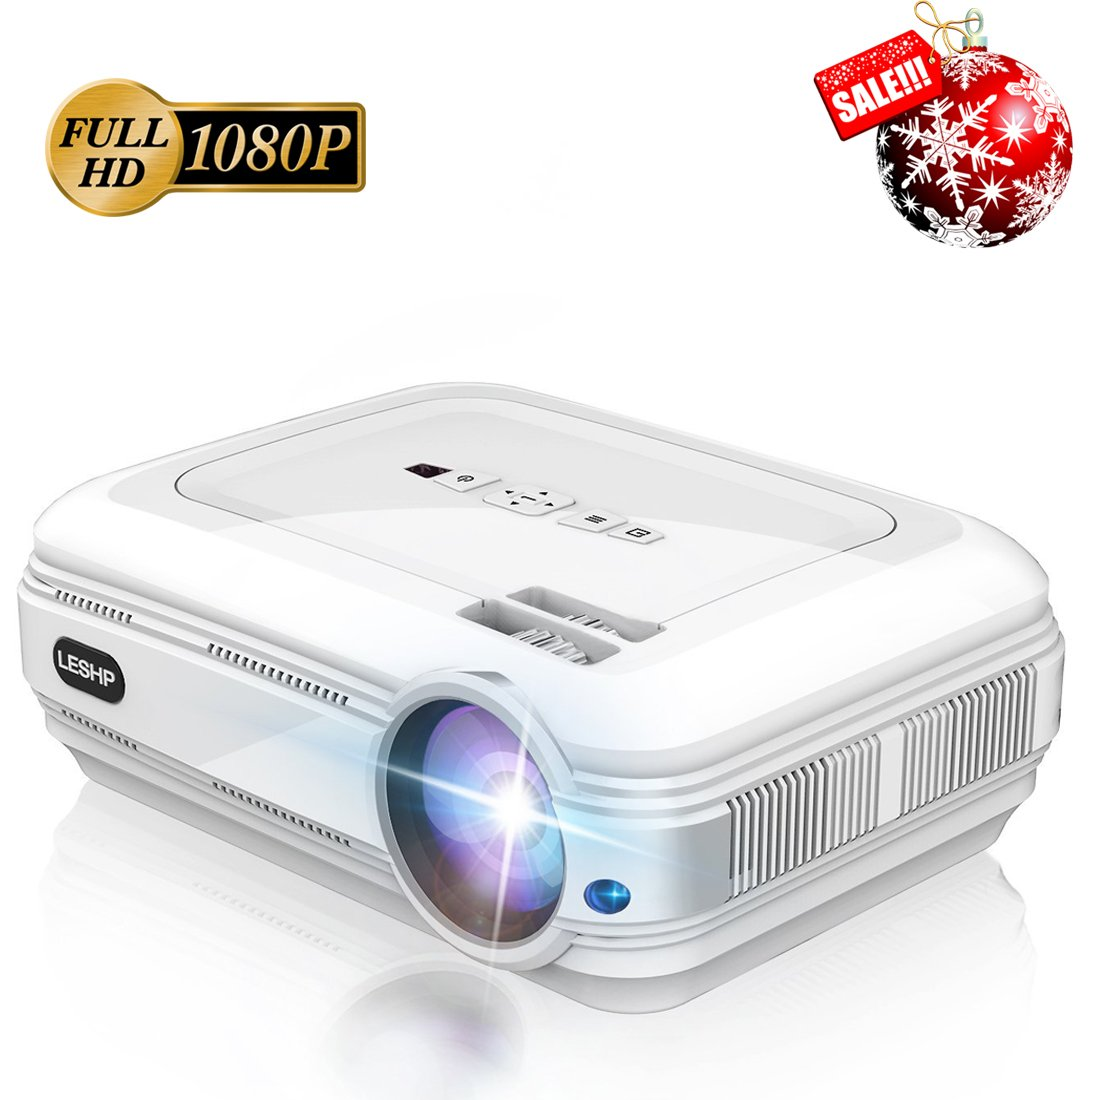 3200 Lumens Full HD 1080P Projector, LESHP Video Projector LED + LCD FOR Home Theater, 1280 x 1920 max resolution Contrast 3000:1, Support 1080P / USB / VGA / SD / HDMI for Xbox / iPhone / Smartphone